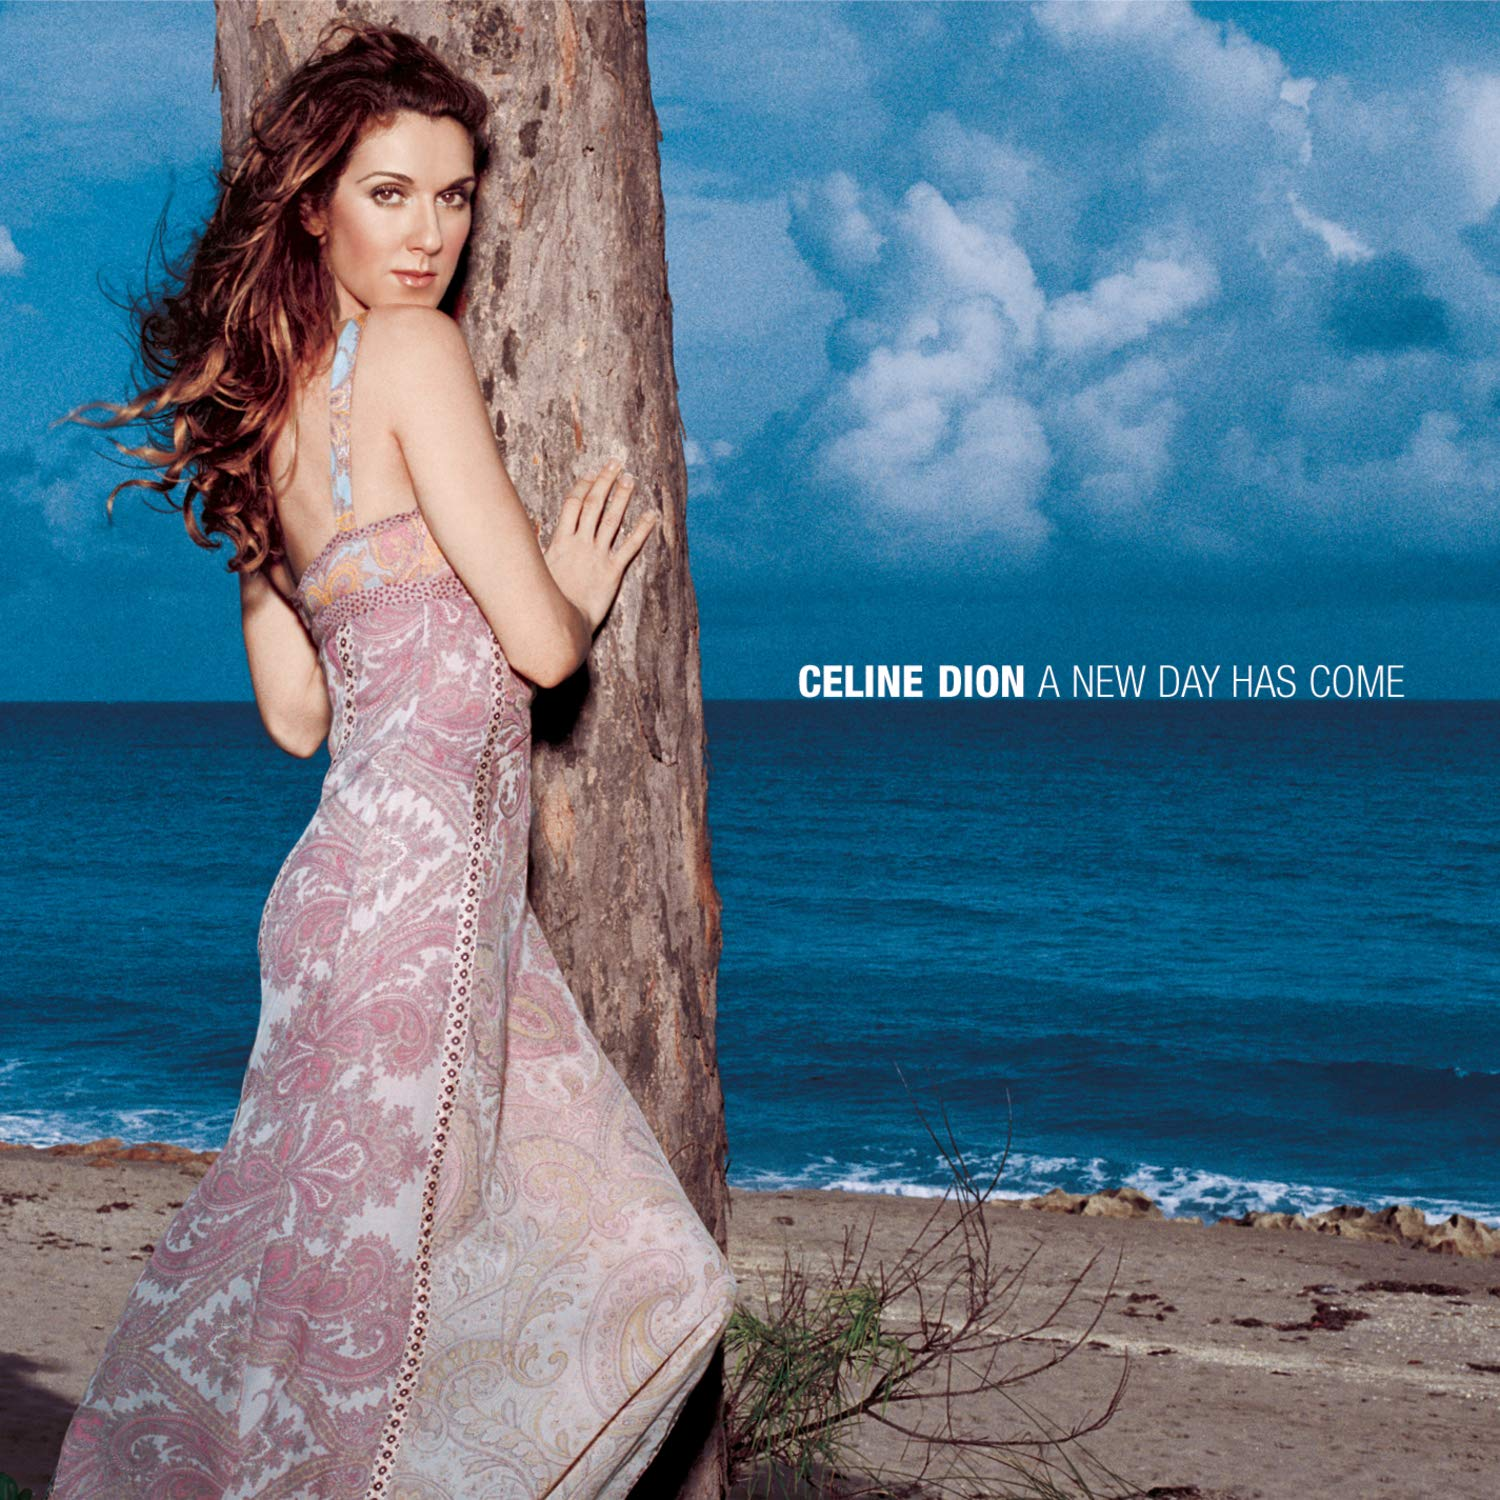 Celine Dion, A New Day Has Come